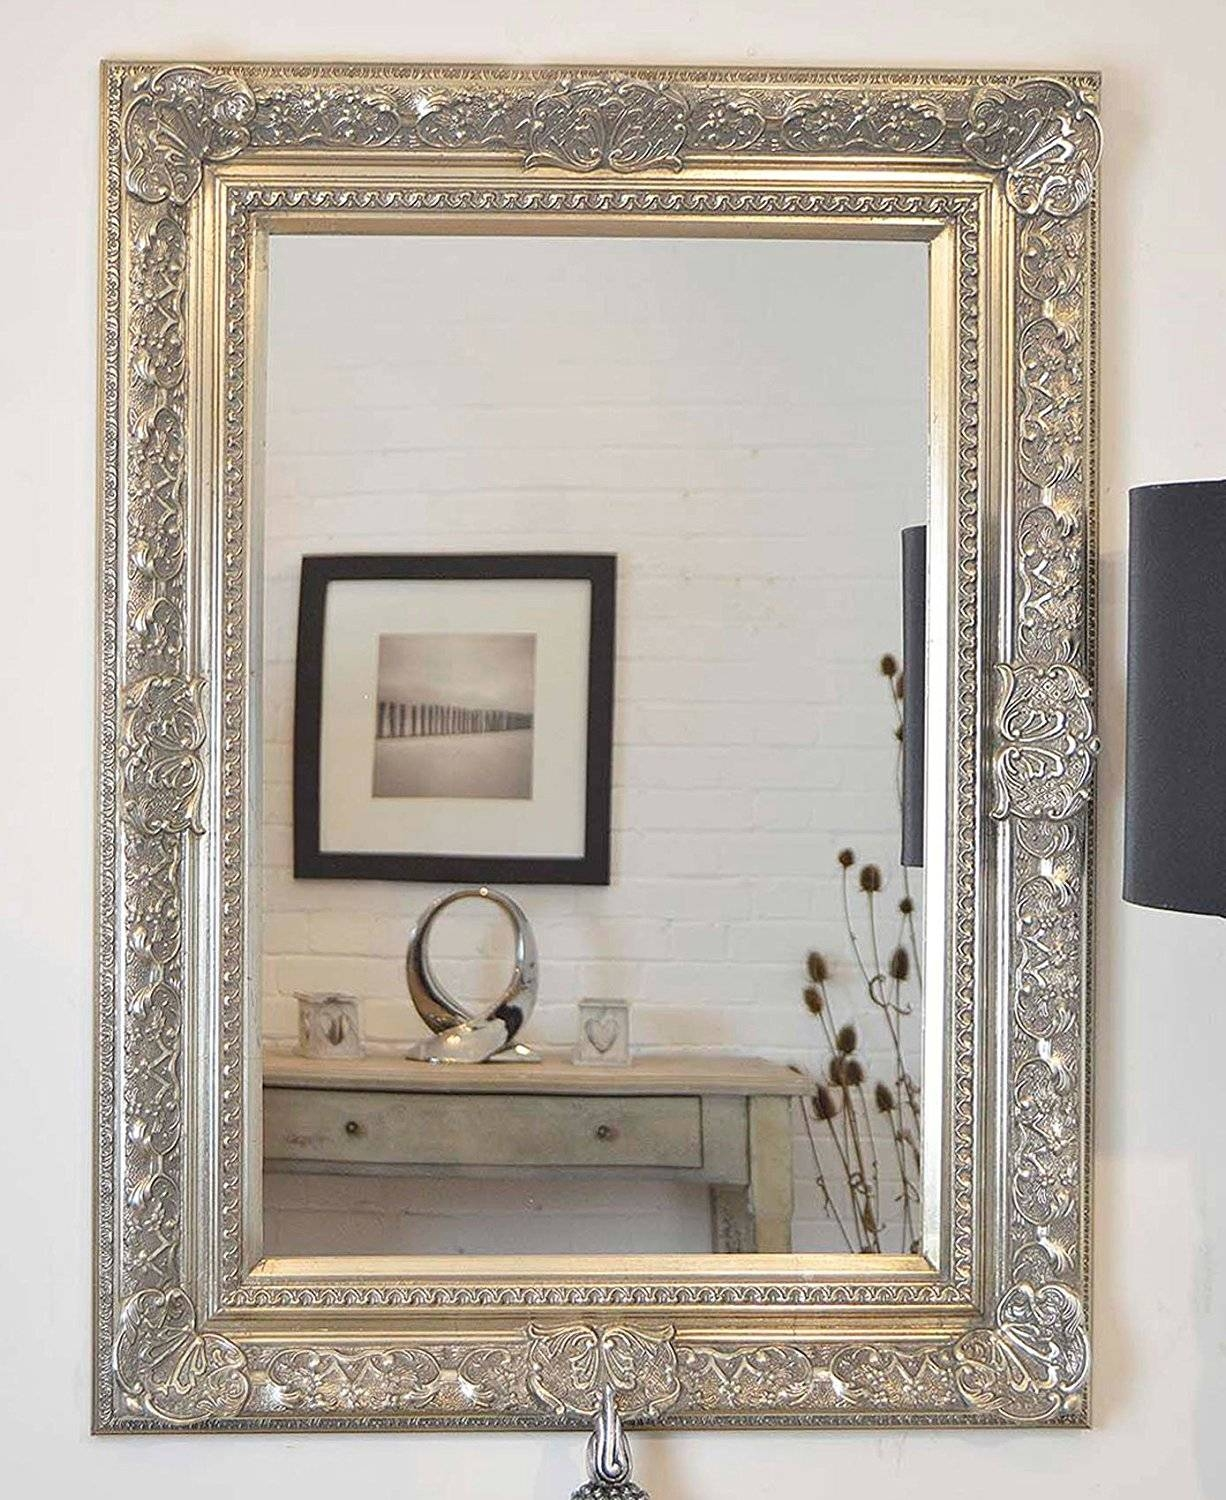 decorative bathroom mirrors 2018 popular ornate bathroom mirrors 12643